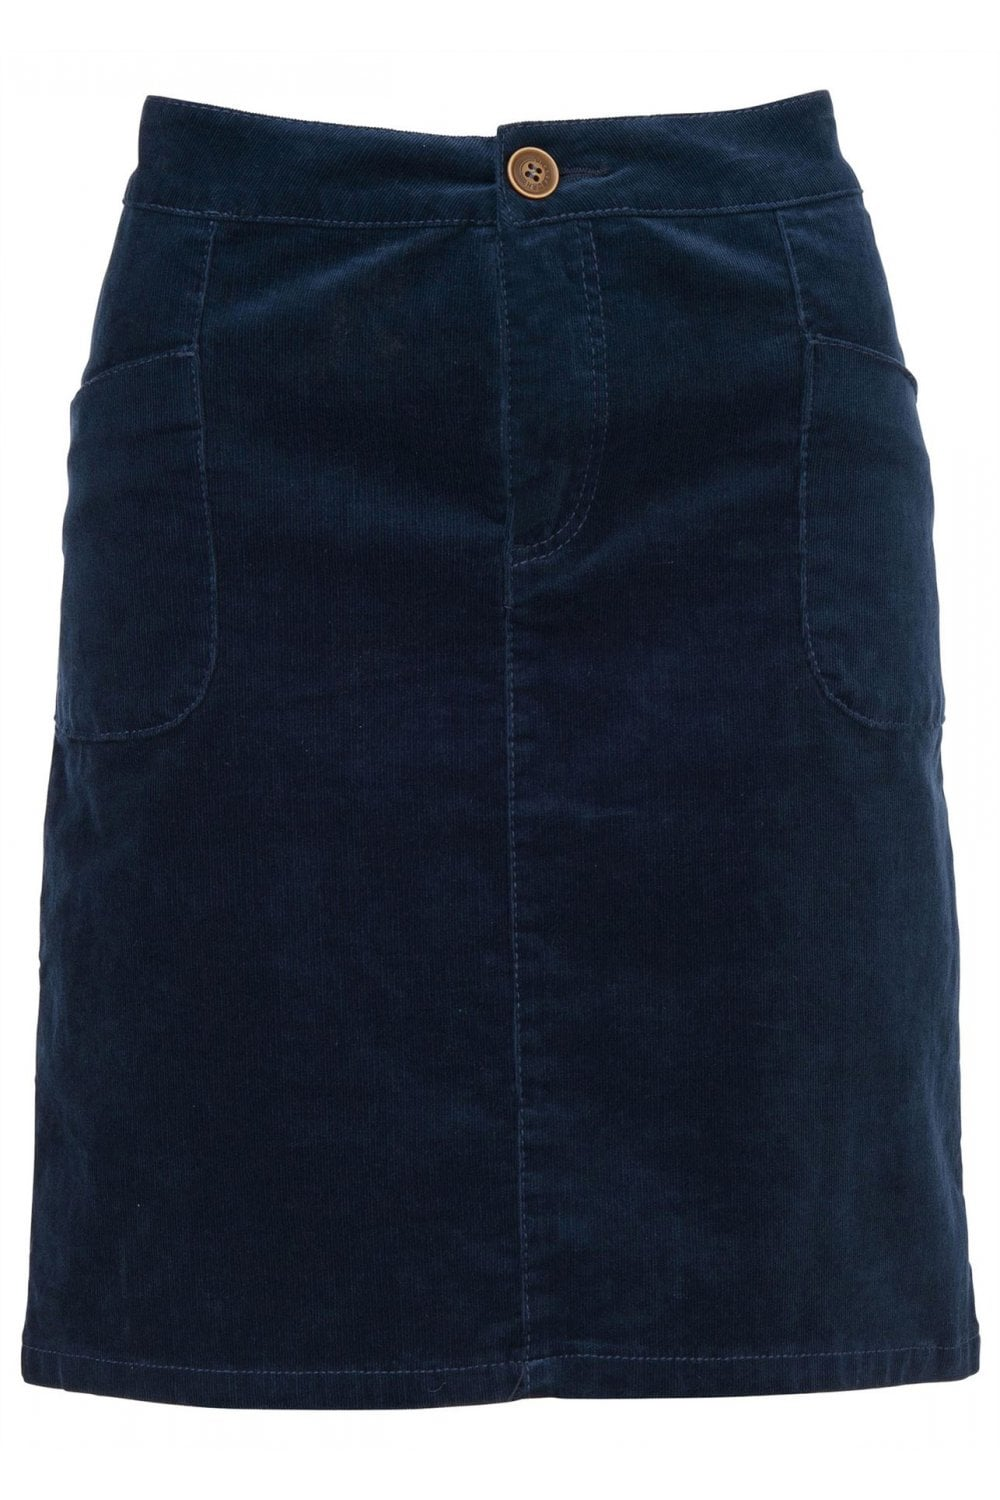 3d7bd4437b Brakeburn Cord Skirt - Navy - Womenswear from Potters of Buxton UK